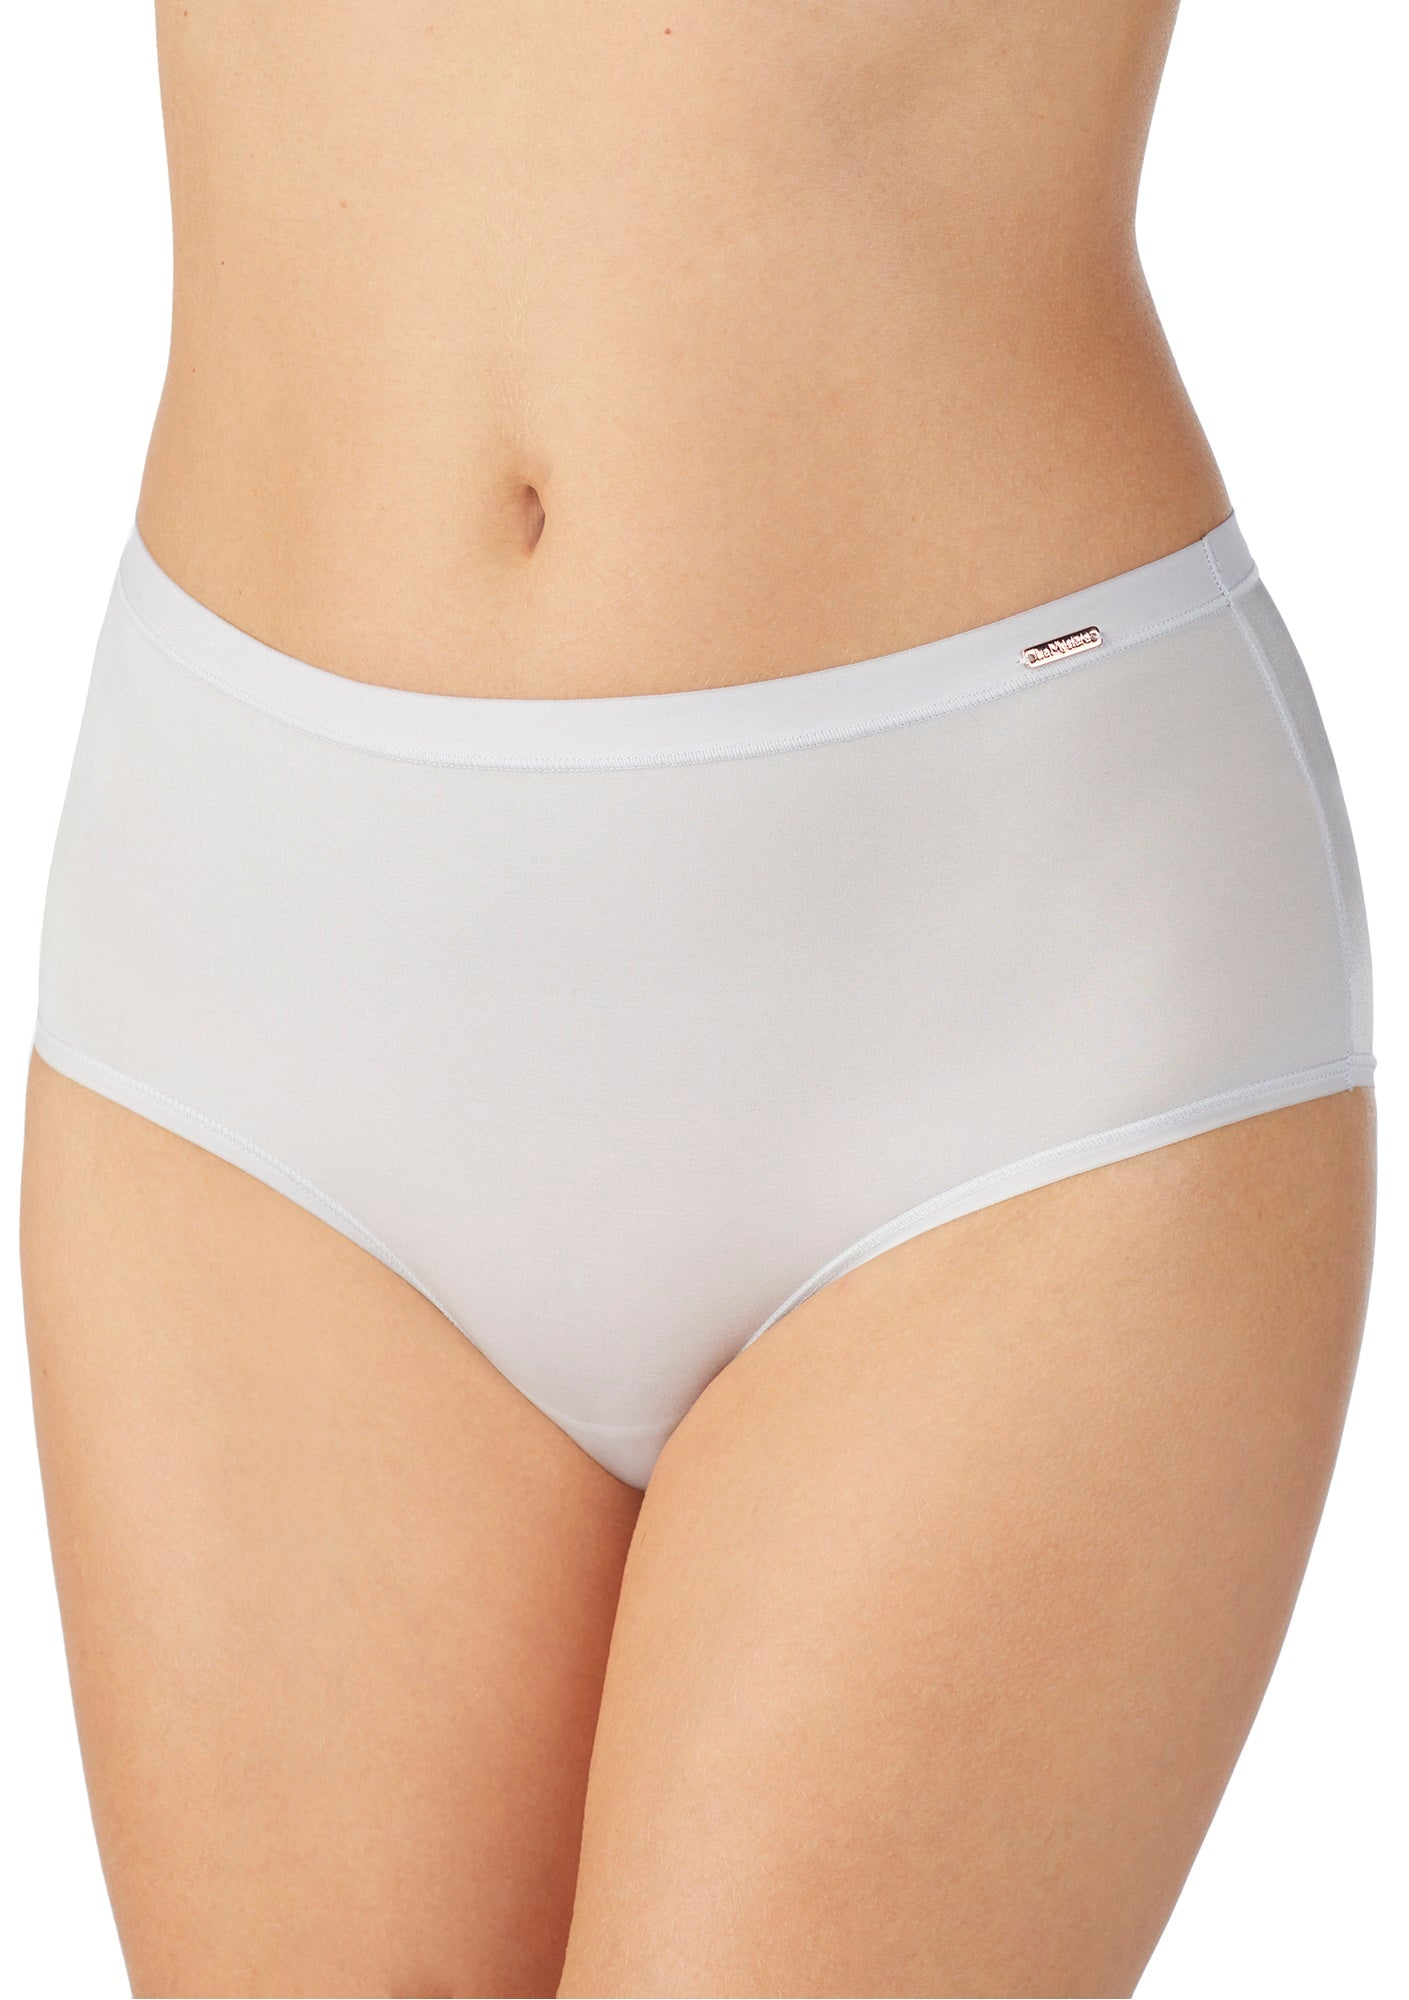 Infinite Comfort Brief - Silver Moon